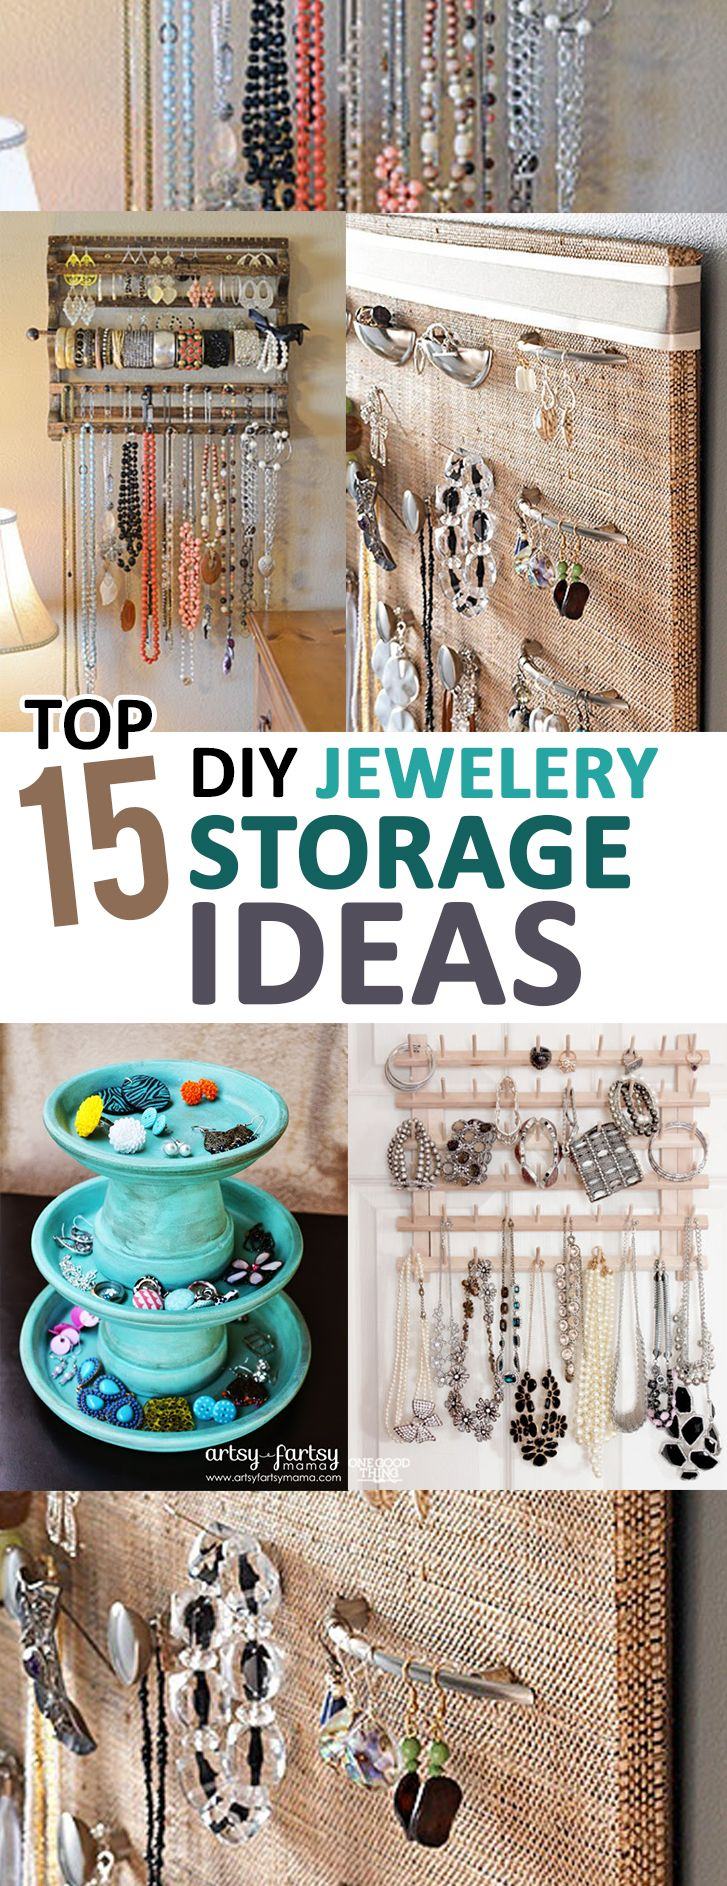 I thought my jewelry box was doomed until I saw these amazing DIY storage ideas…you have to try some of them too!